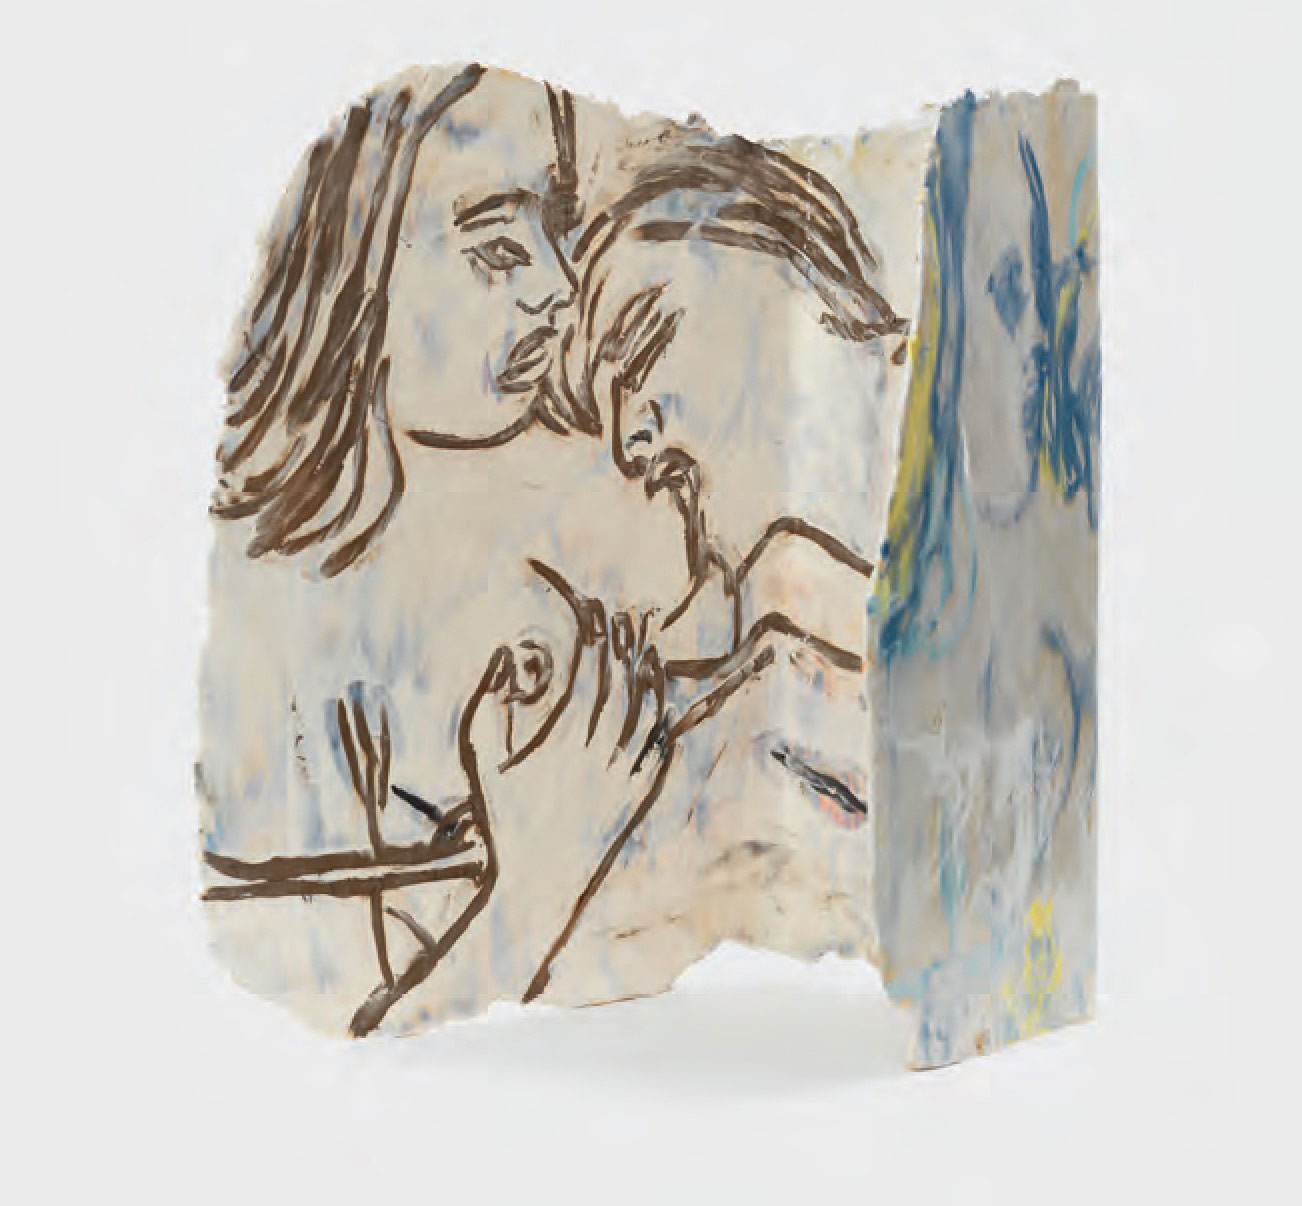 ?Thinking Twice, 2015 Ceramic - Ghada Amer - courtesy the artist and Cheim & Read